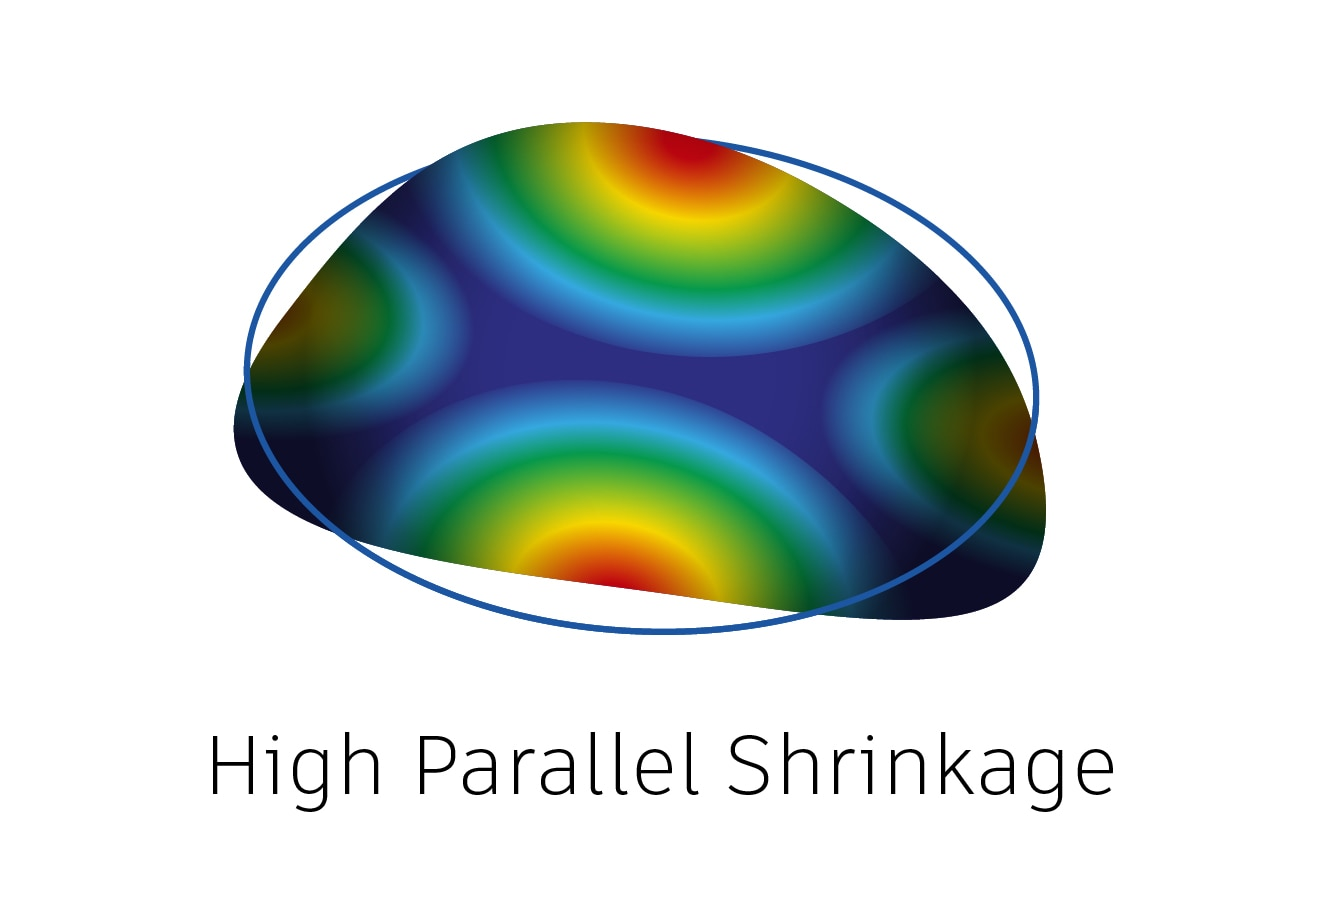 High parallel shrinkage